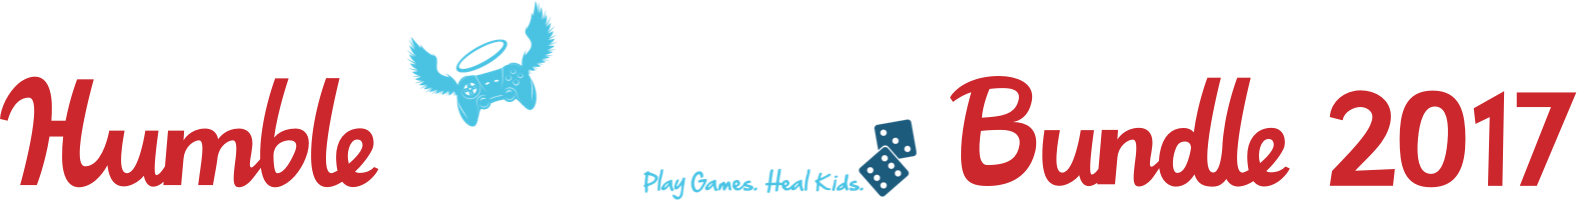 The Humble Extra Life Bundle 2017